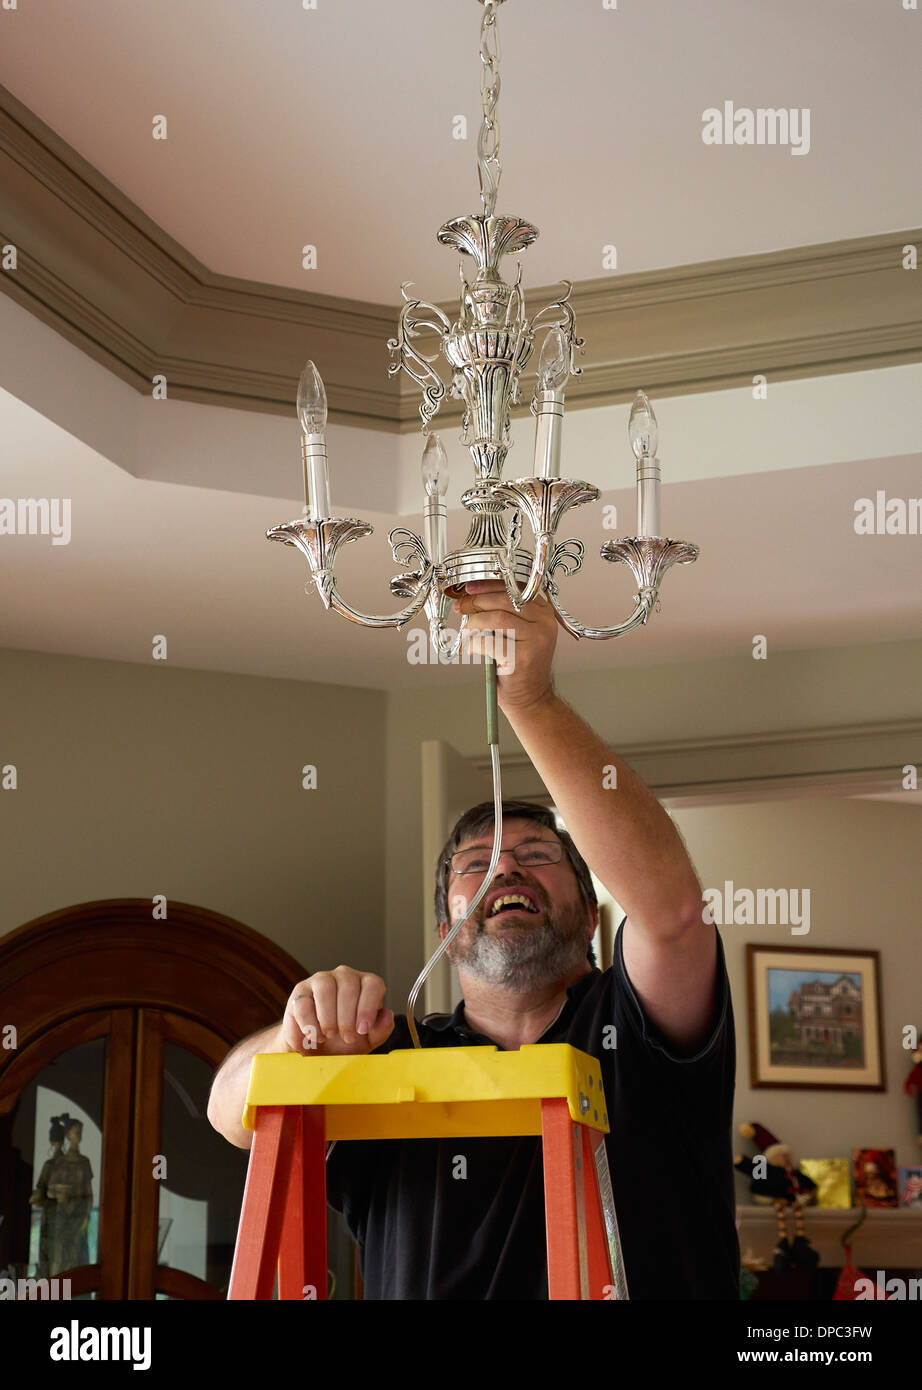 Electrician hanging a dining room light fixture - Stock Image